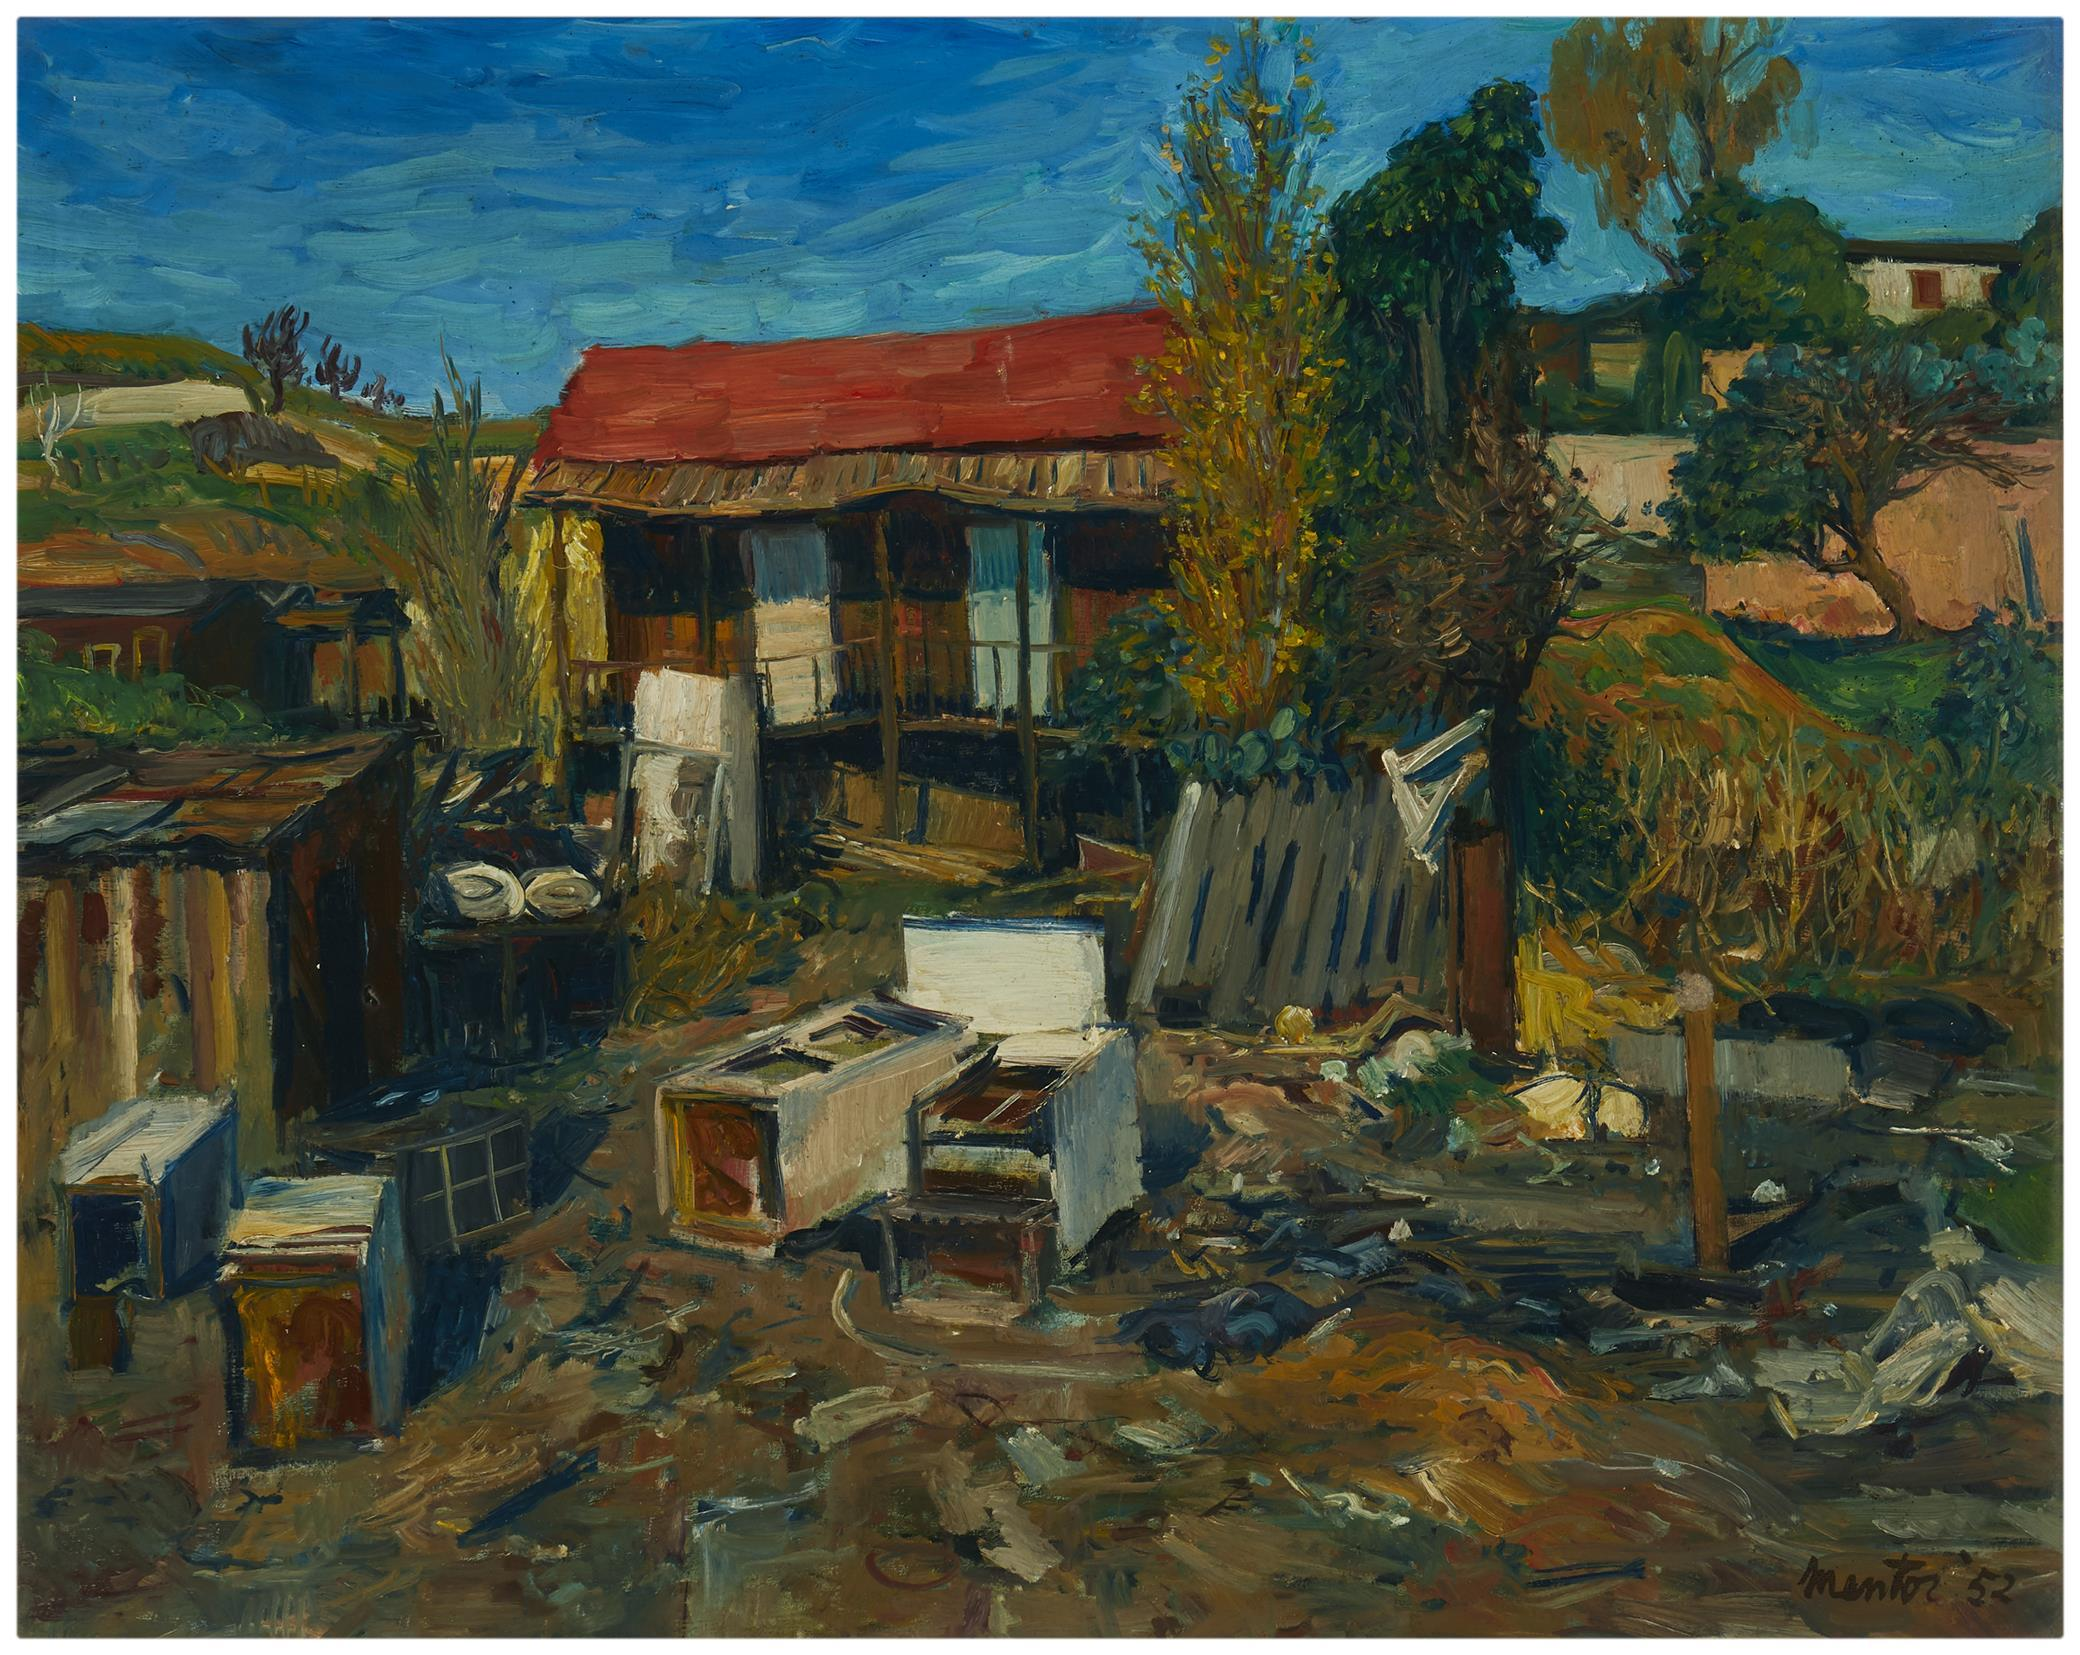 """Mentor Huebner, (1917-2001, Los Angeles, CA), """"Nothing is Forever,"""" 1952, Oil on board, 24"""" H x 30"""" W"""